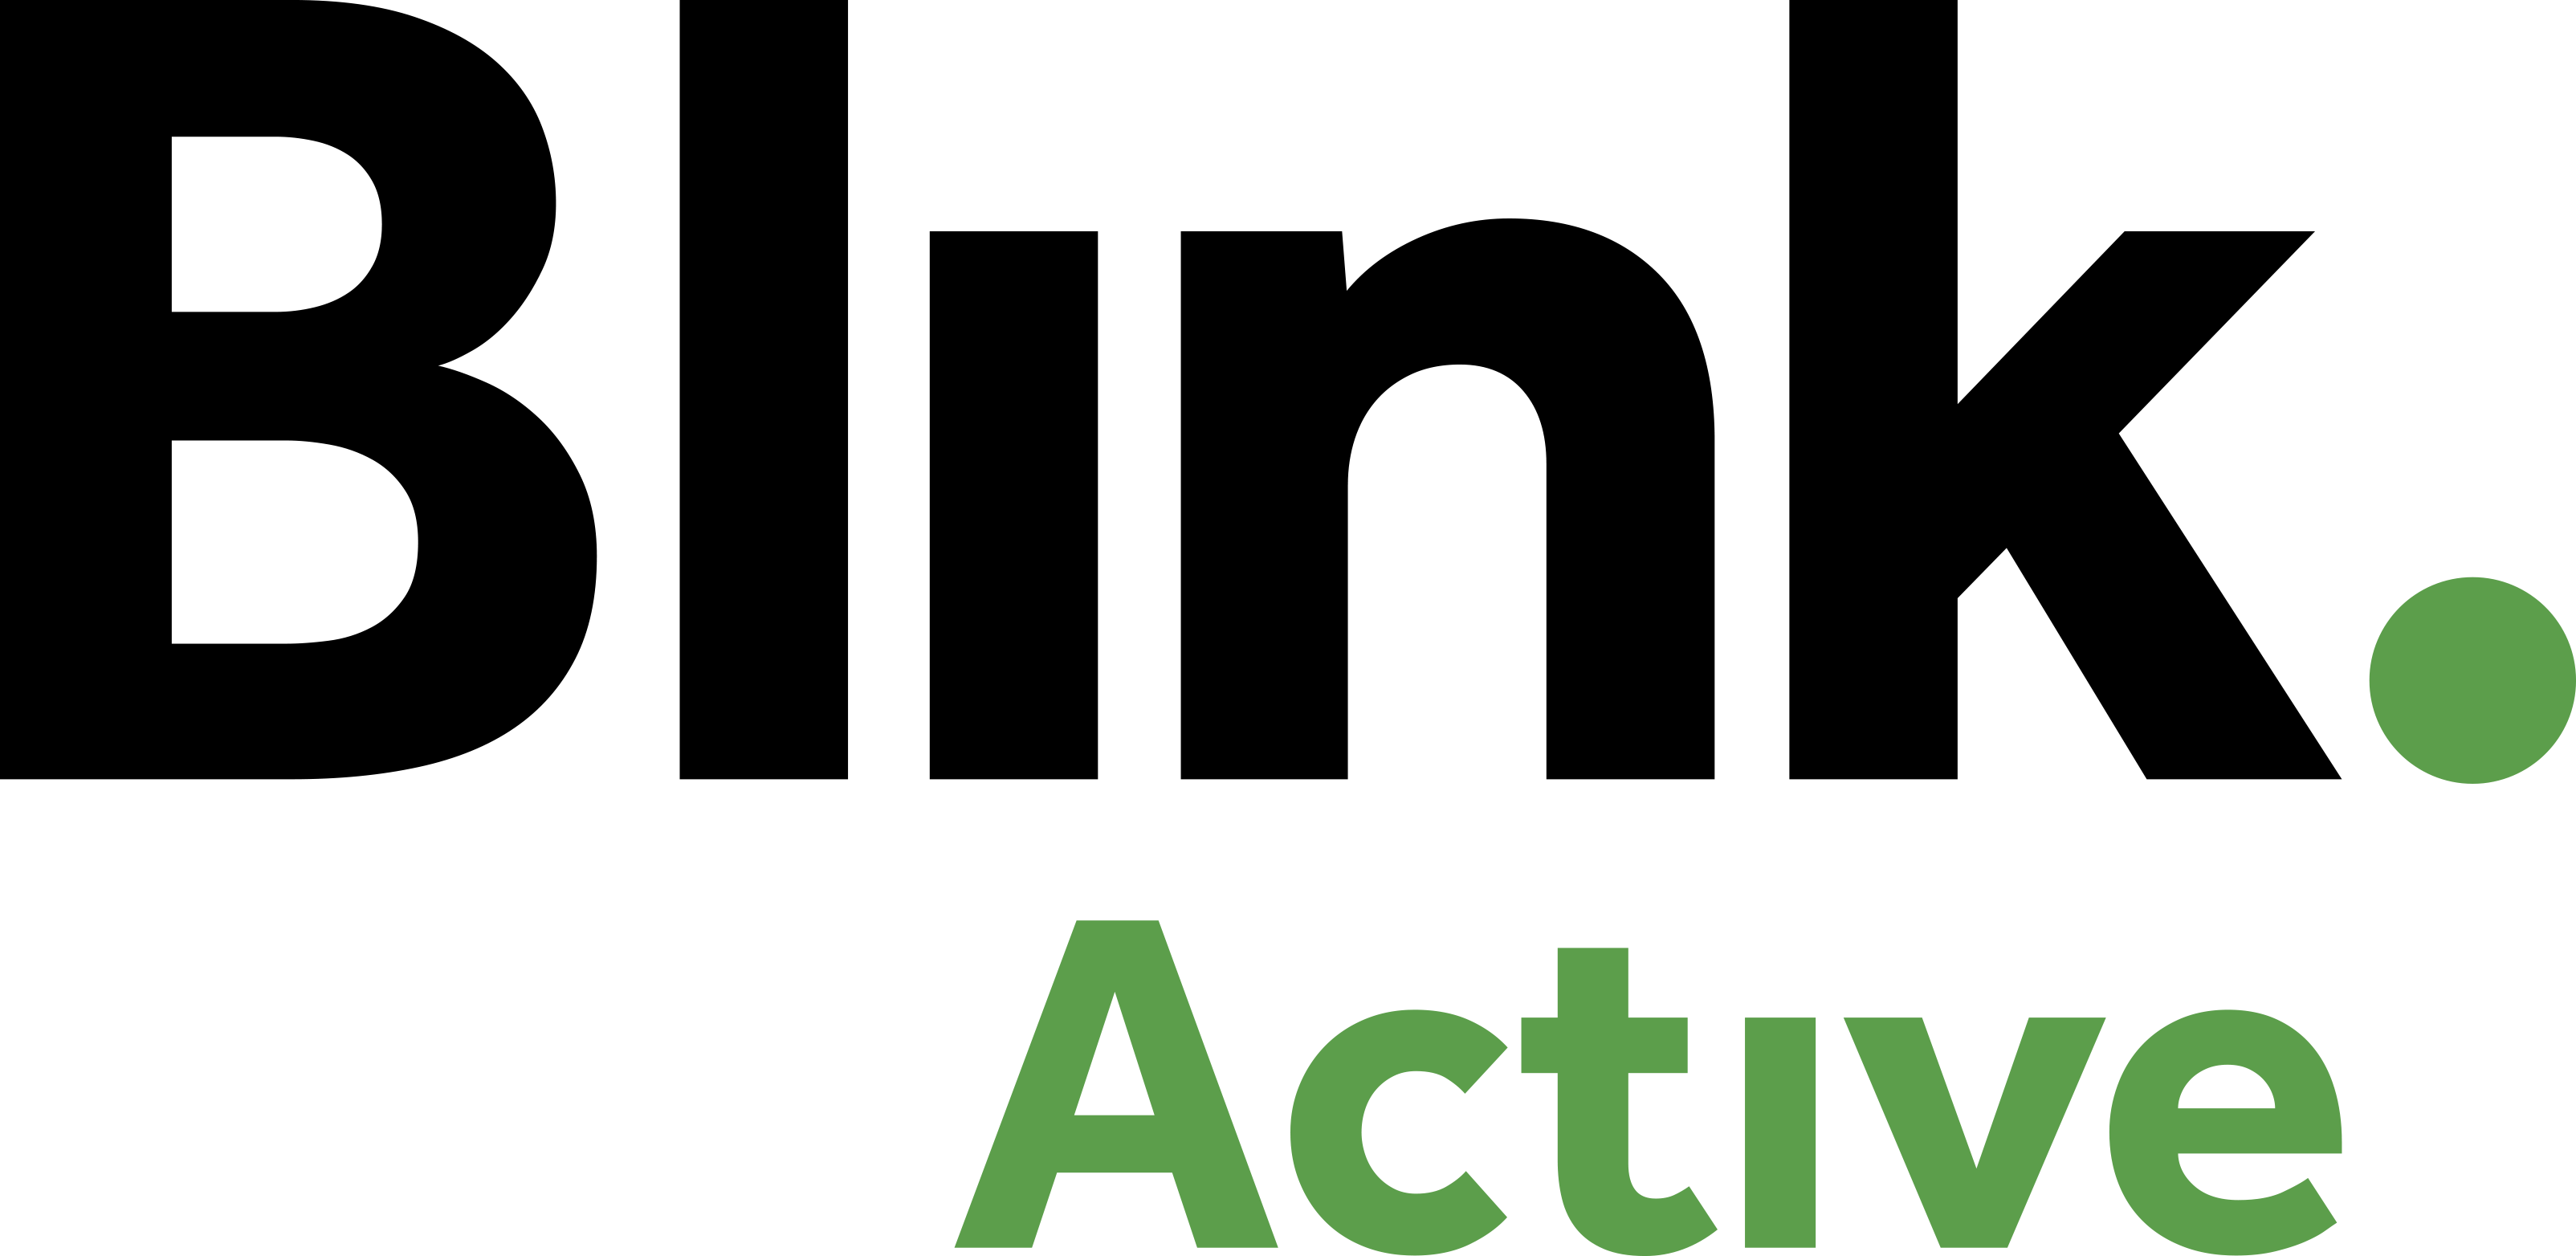 Blink Active Logo